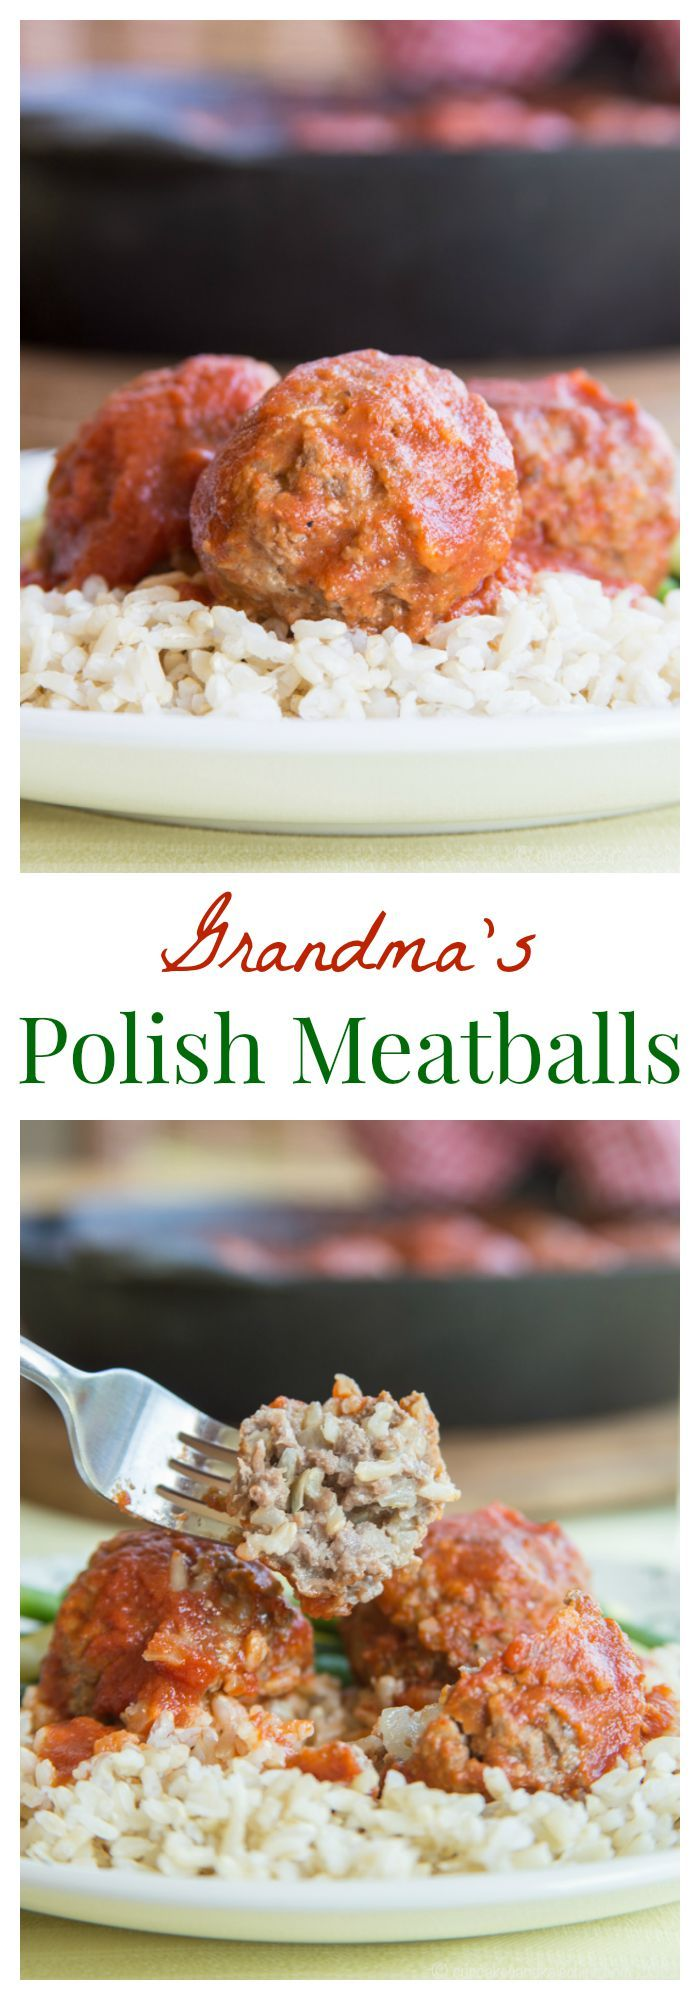 "Grandma's Polish Meatballs (aka ""Porcupine Meatballs"") - whenever my grandma made her traditional stuffed cabbage, she would take some of the savory meat filling and make these for me for Sunday supper. 